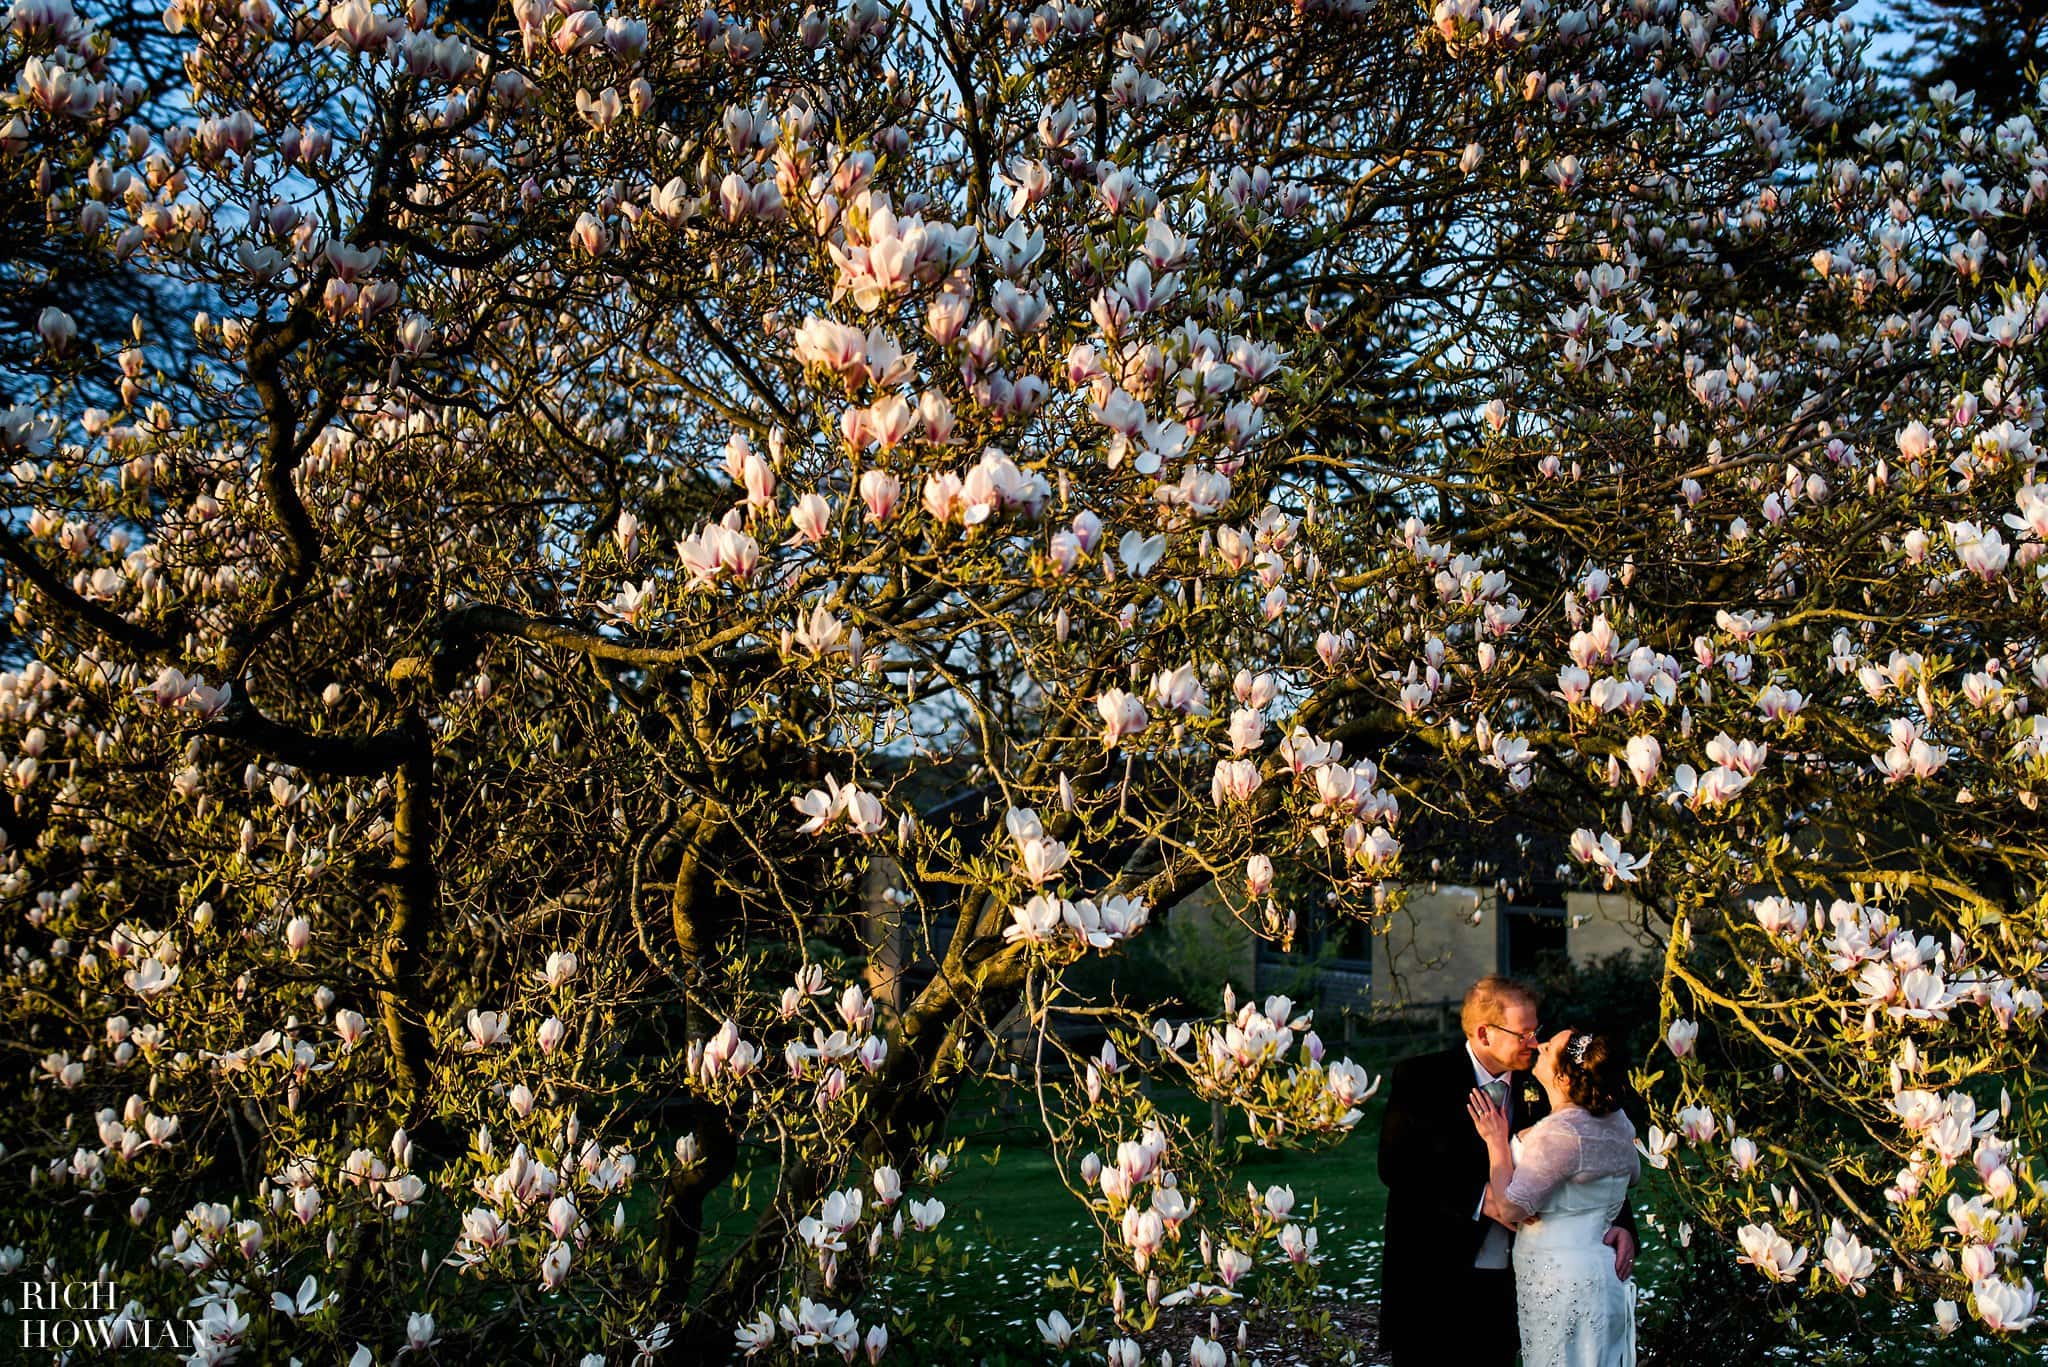 Wedding Photography under a magnolia tree